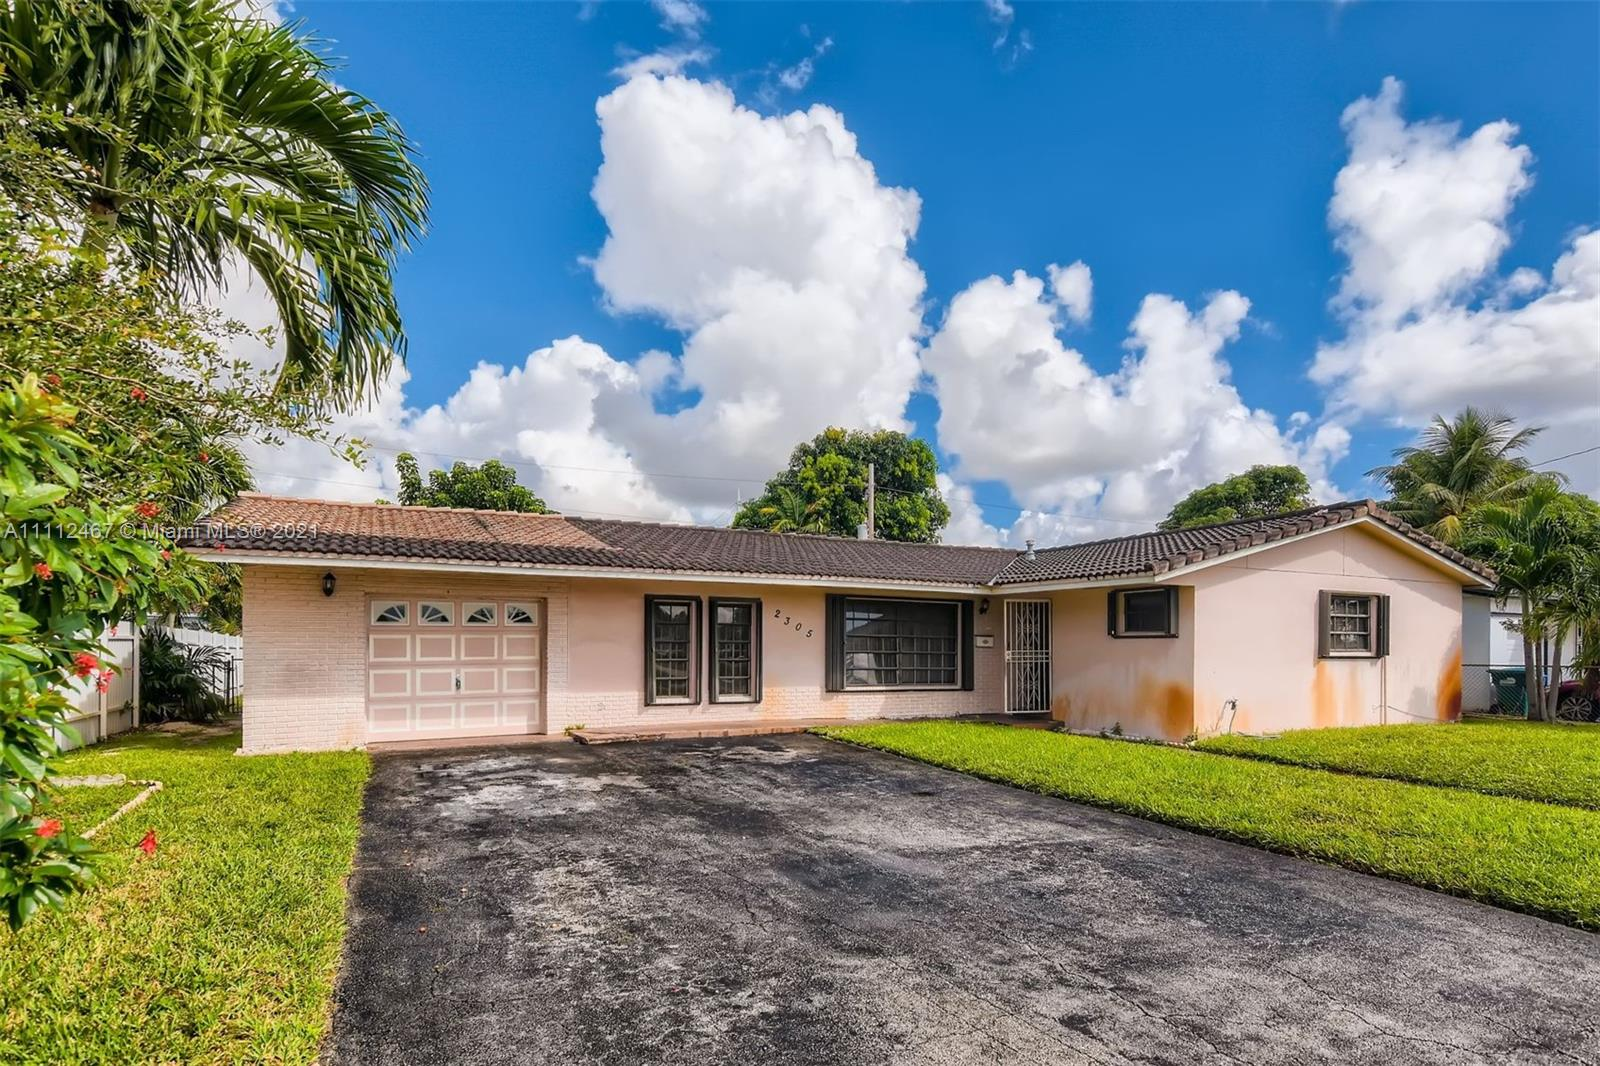 Single Family Home,For Sale,2305 NW 195th St, Miami Gardens, Florida 33056,Brickell,realty,broker,condos near me